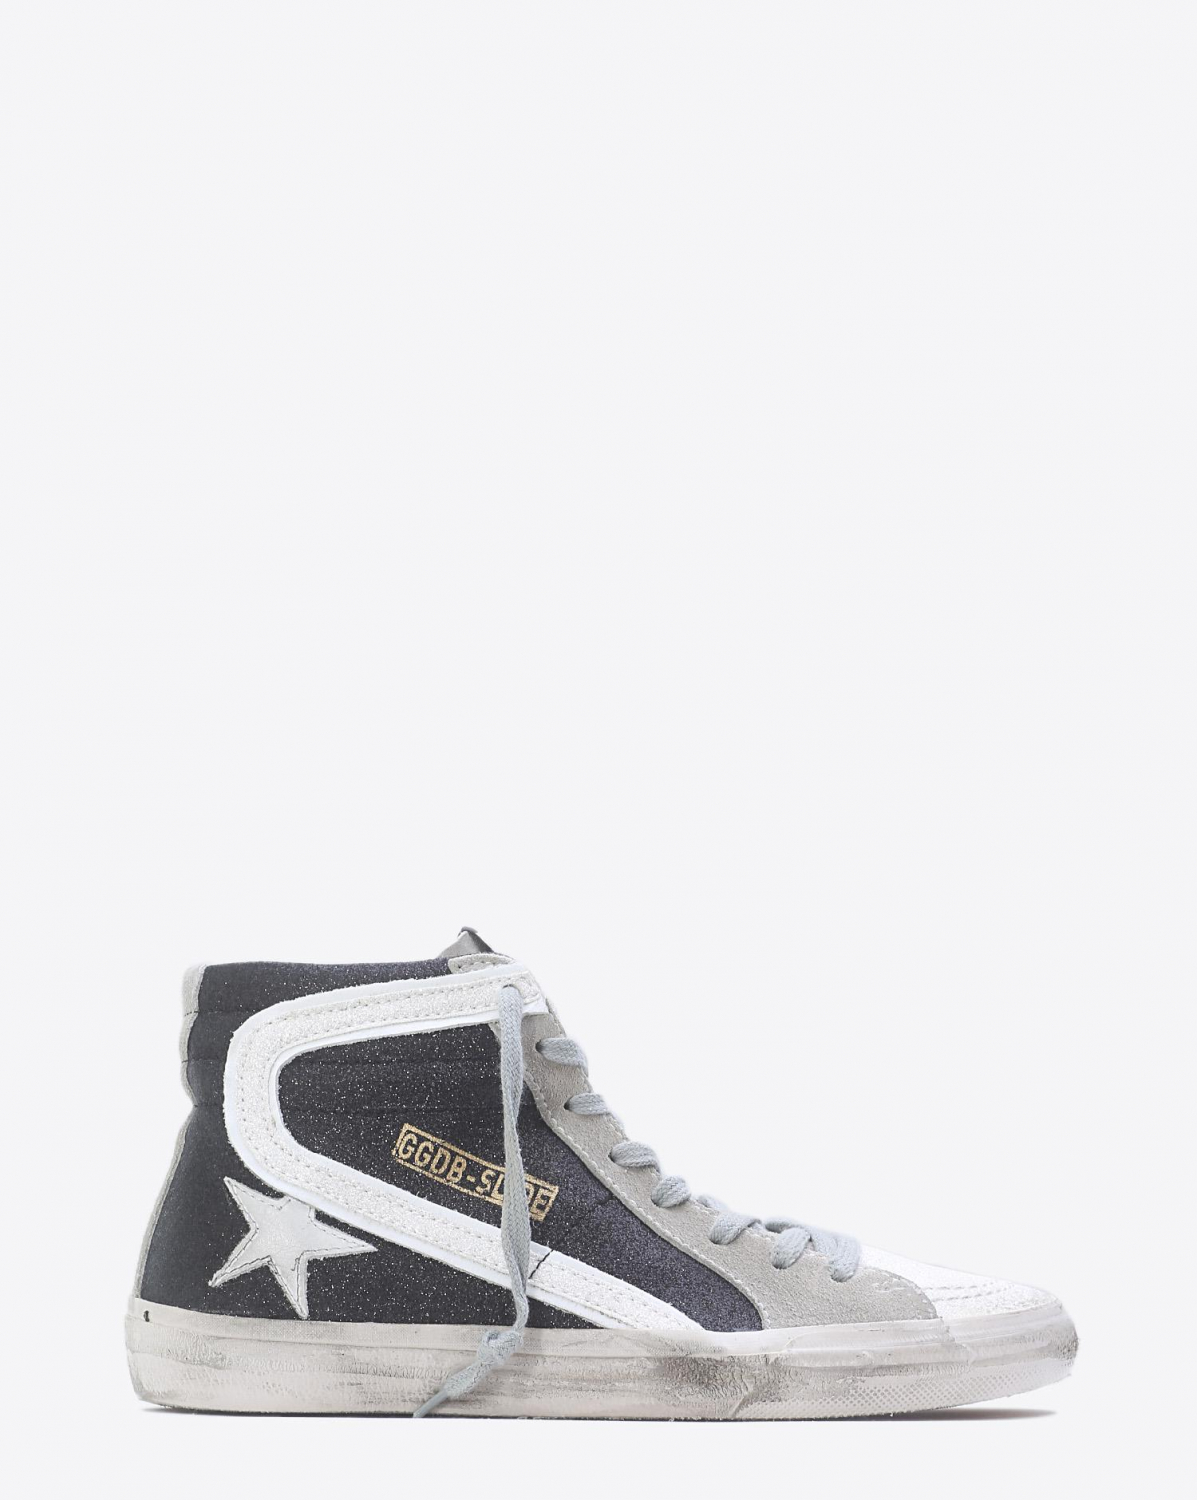 Golden Goose Woman Pré-Collection Sneakers Slide - Black Glitter White Star